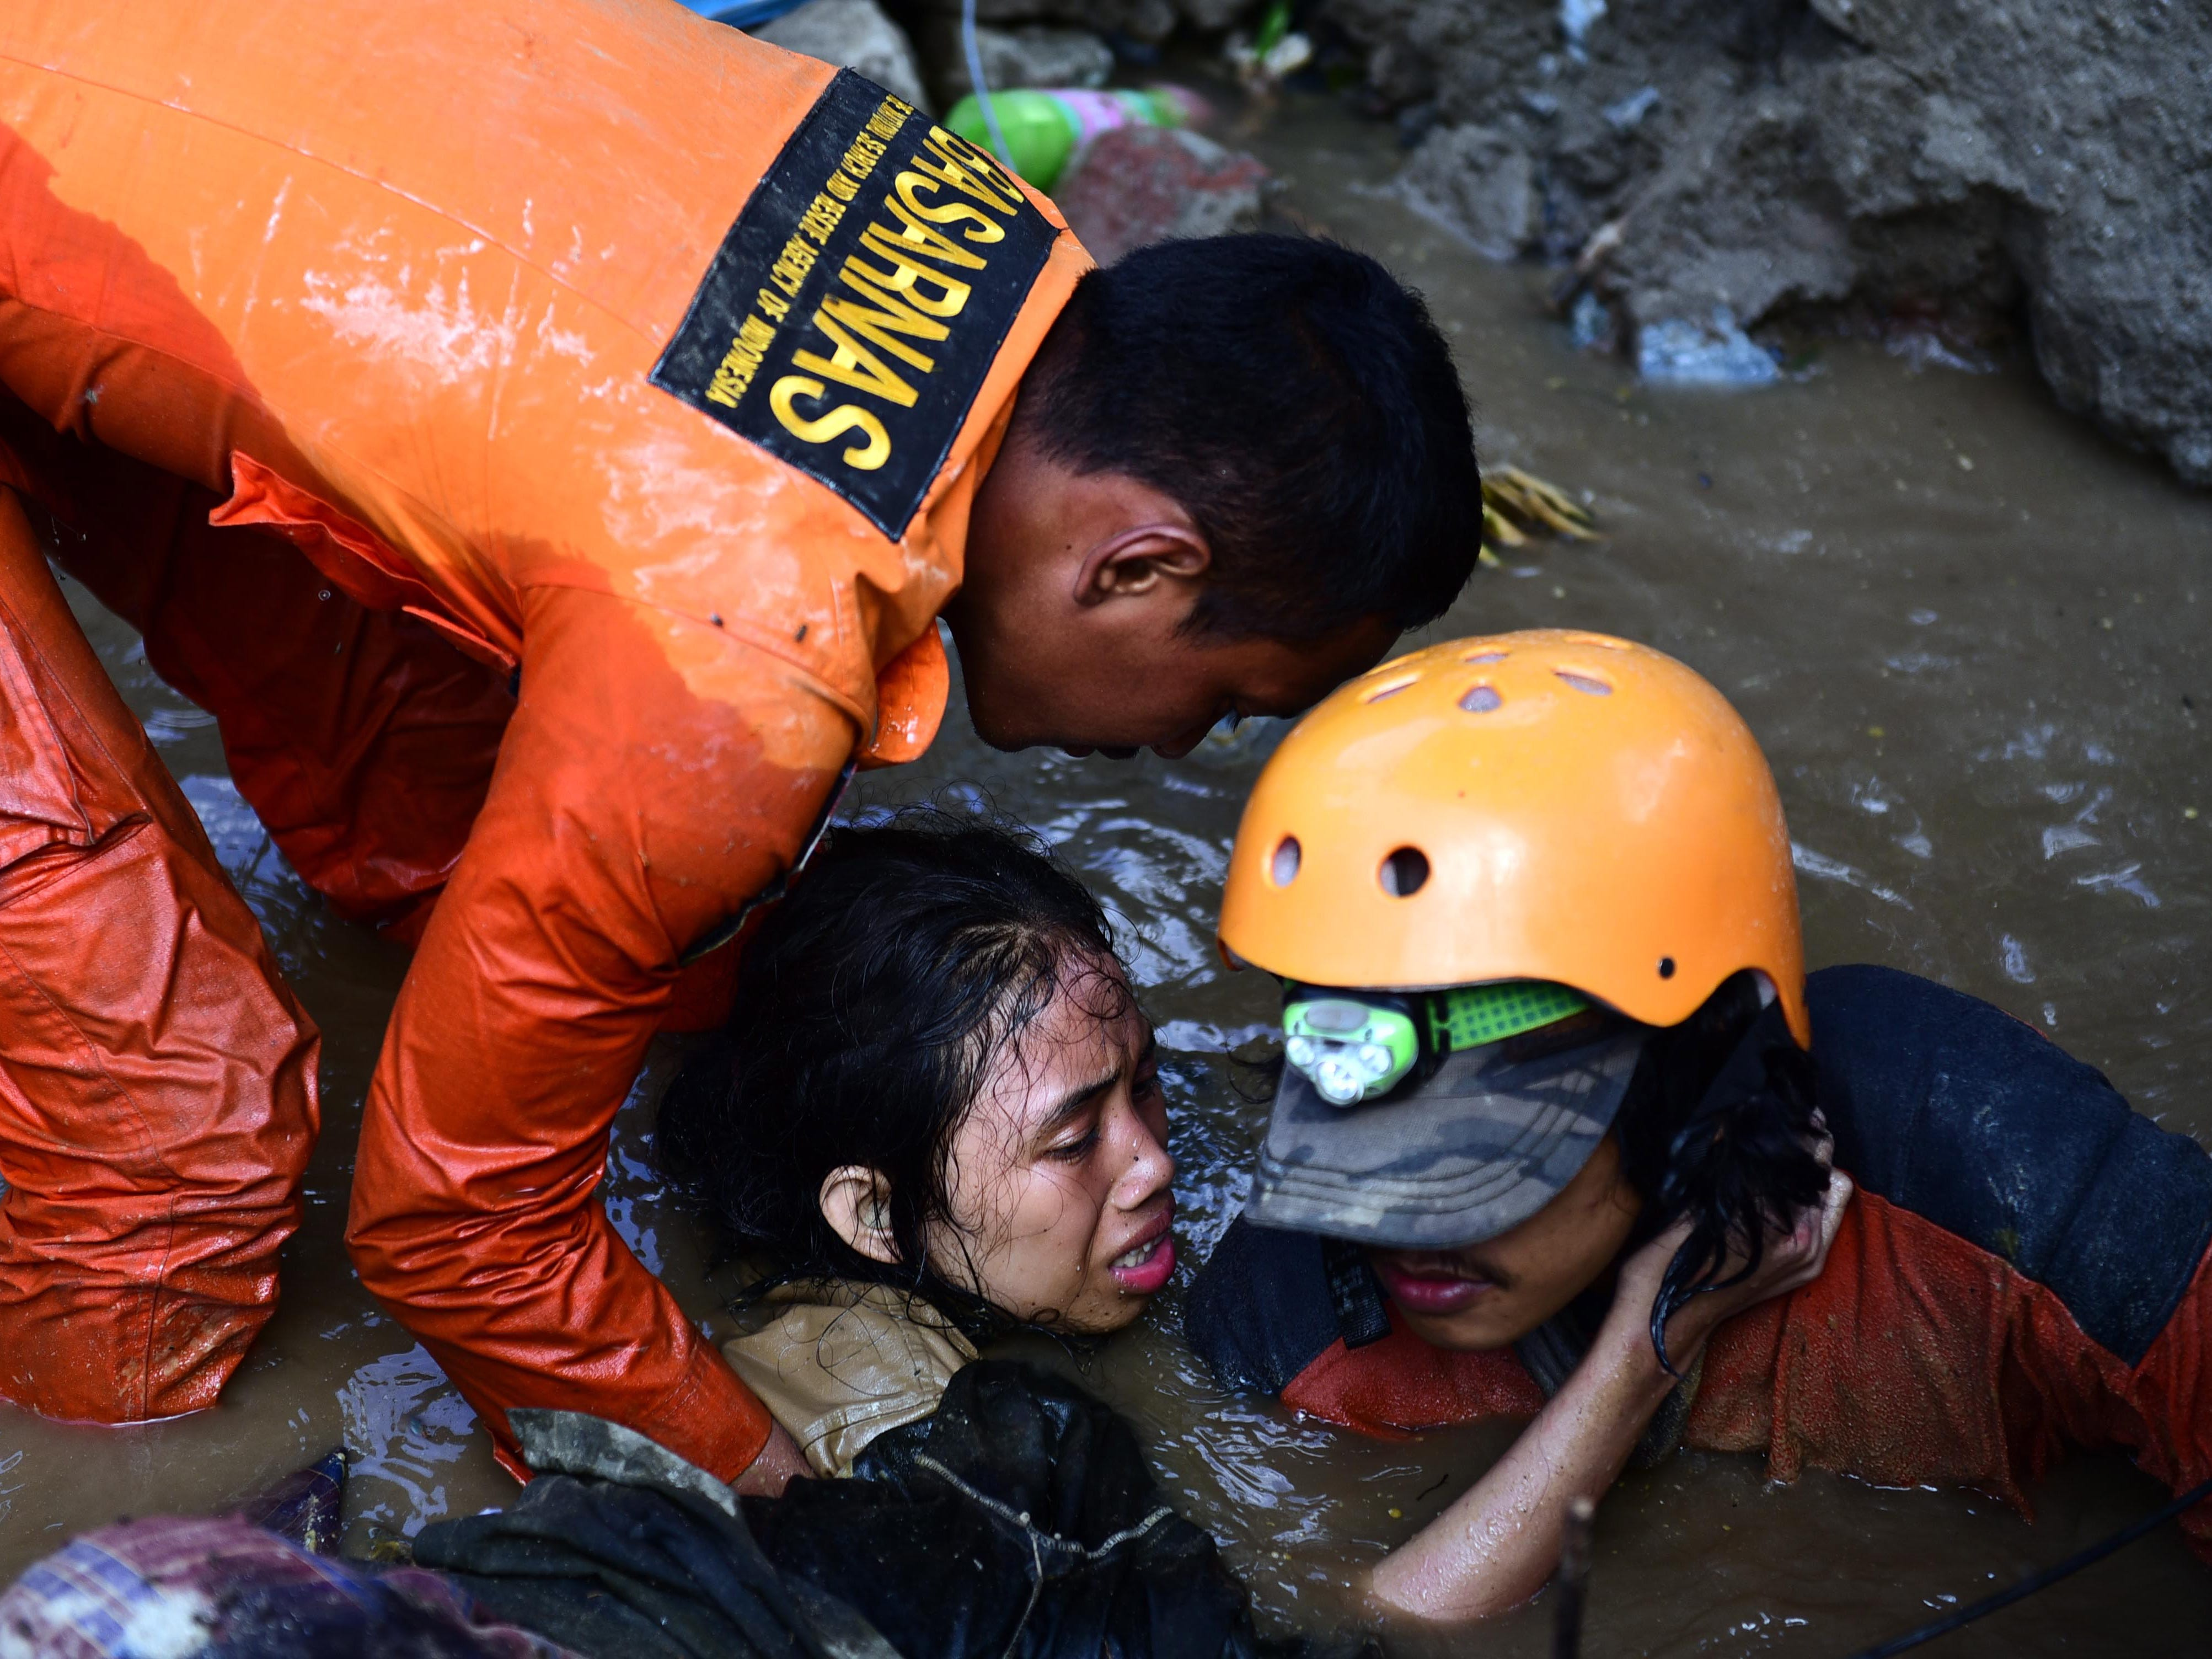 Rescuers try to free a 15-year-old earthquake survivor, Nurul Istikhomah, from the flooded ruins of a collapsed house in Palu, Central Sulawesi, Indonesia, Sept. 30, 2018. Istikhamah had been trapped in water for two days. Authorities said hundreds of people have died as a result of a series of powerful earthquakes that hit Central Sulawesi and triggered a tsunami on Sept. 28, 2018.